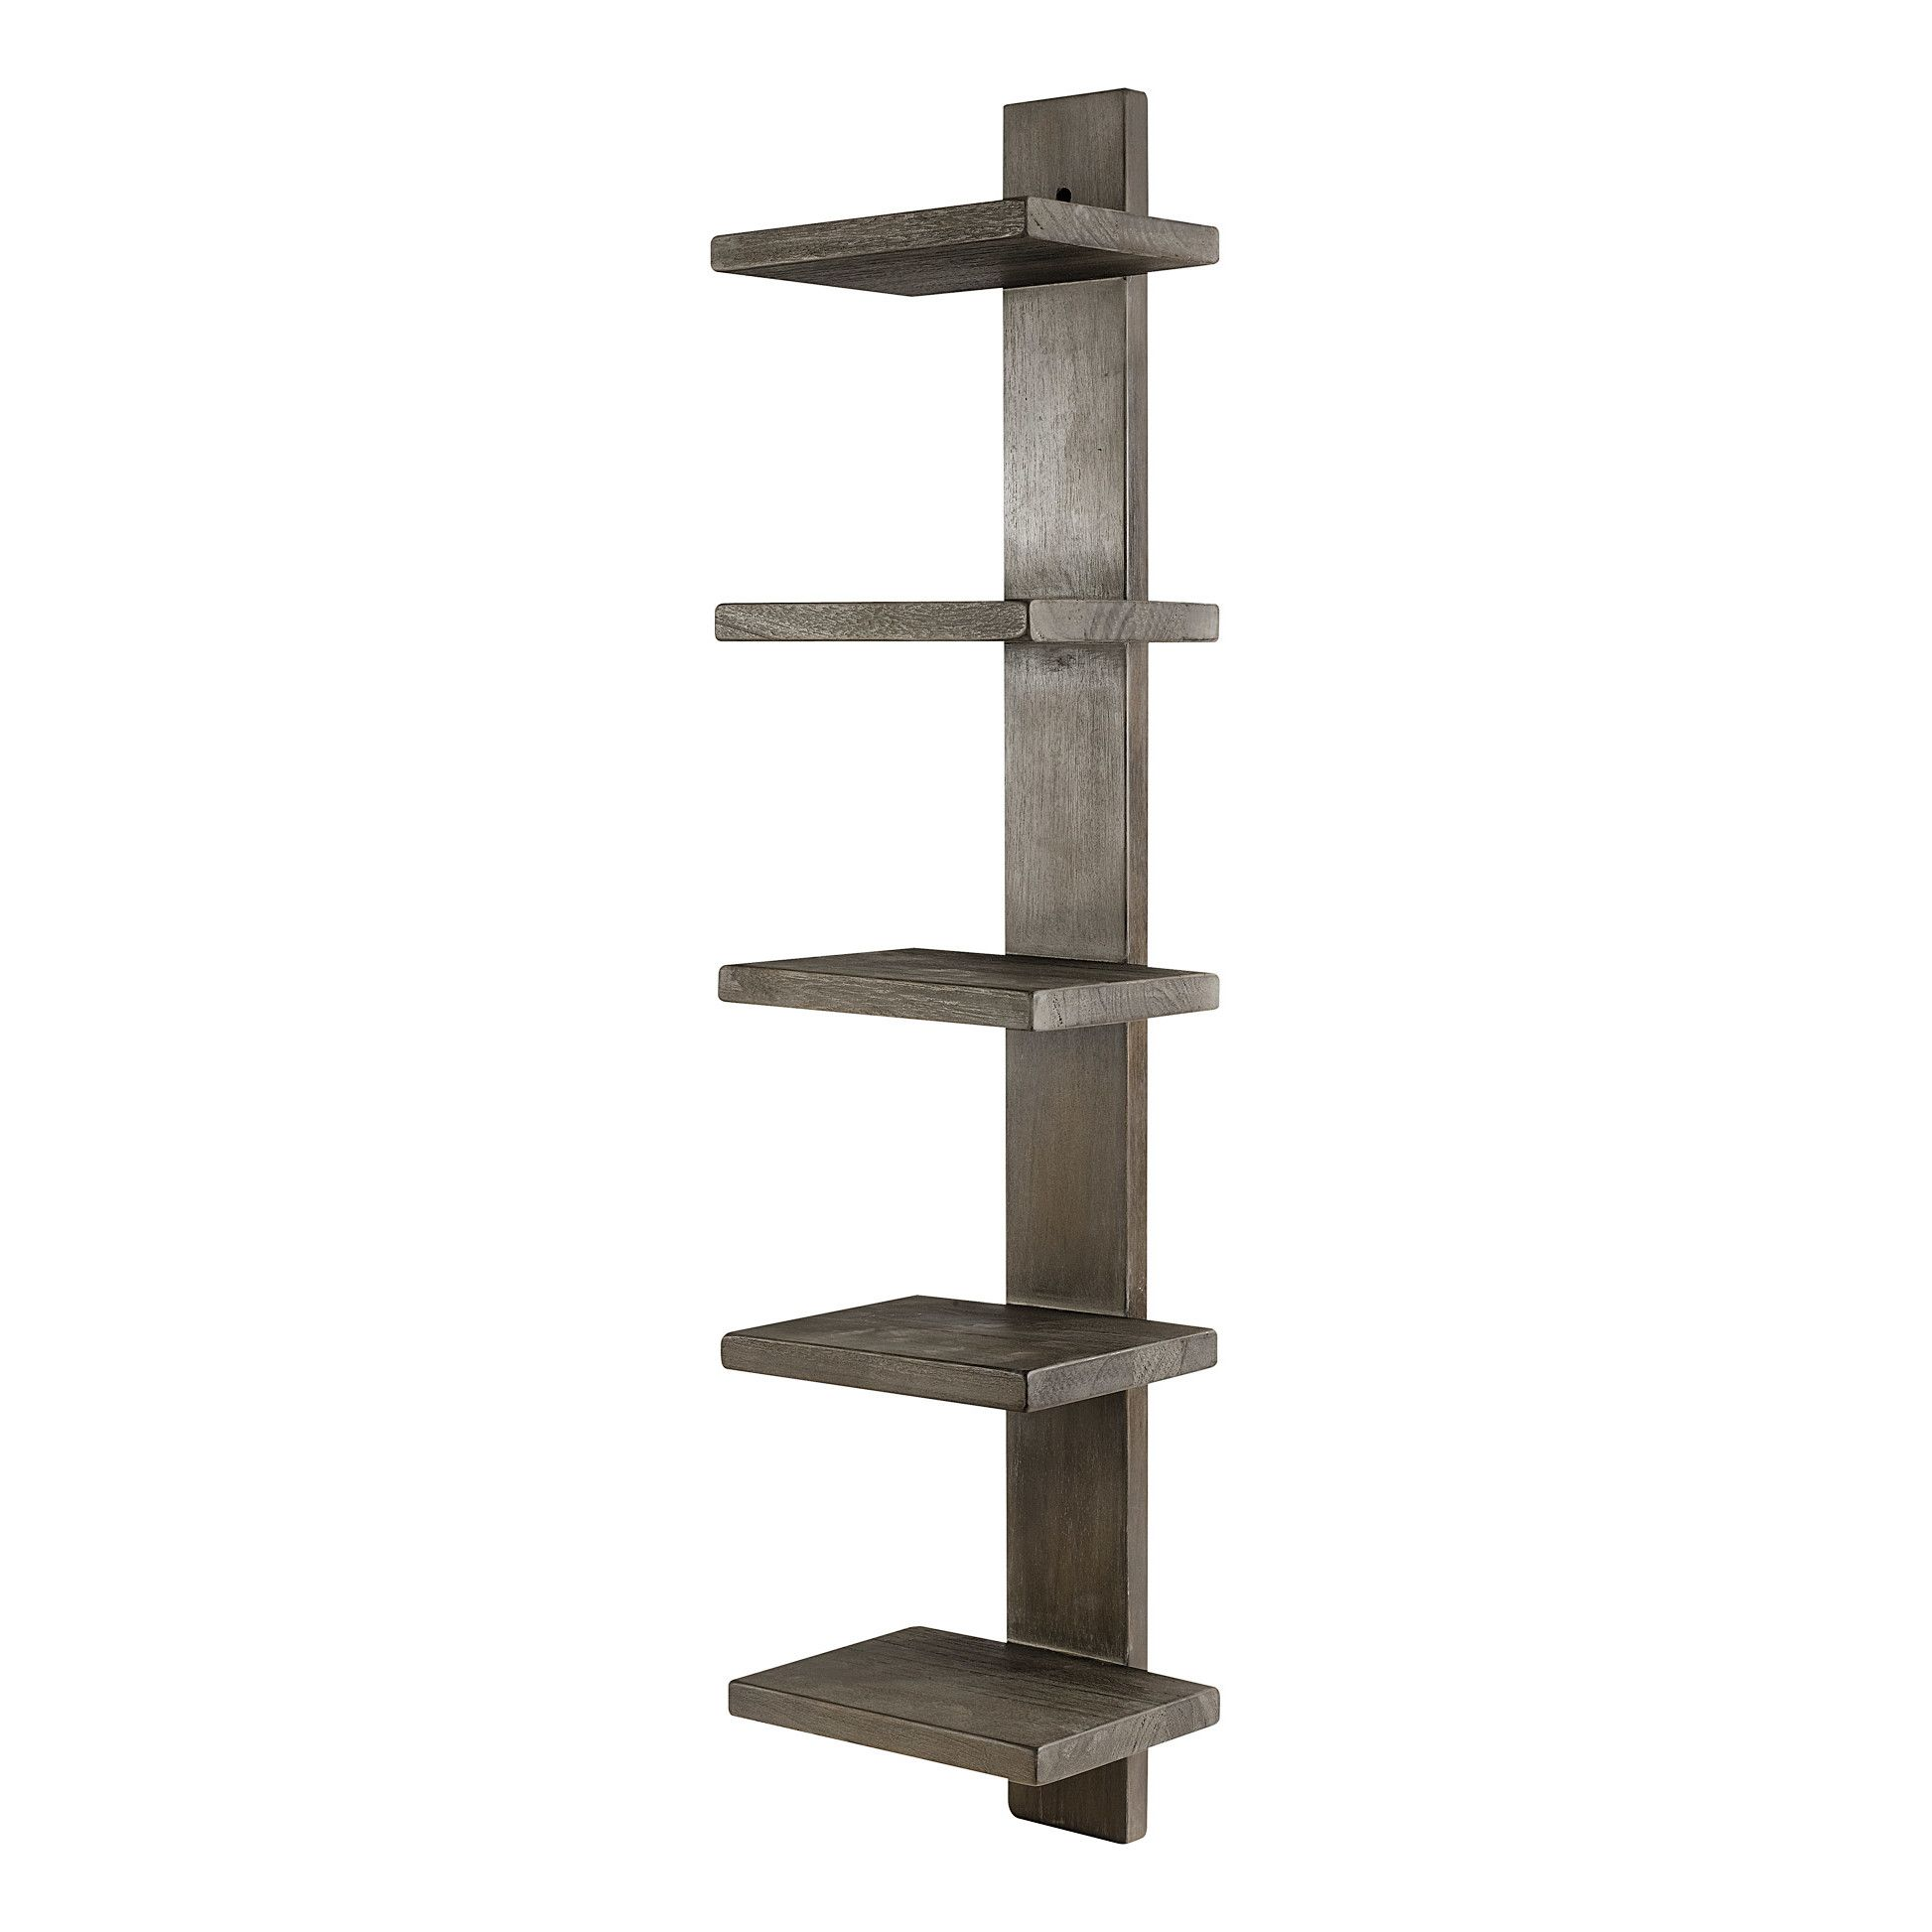 Find the perfect Shelves for you online at Wayfair.co.uk